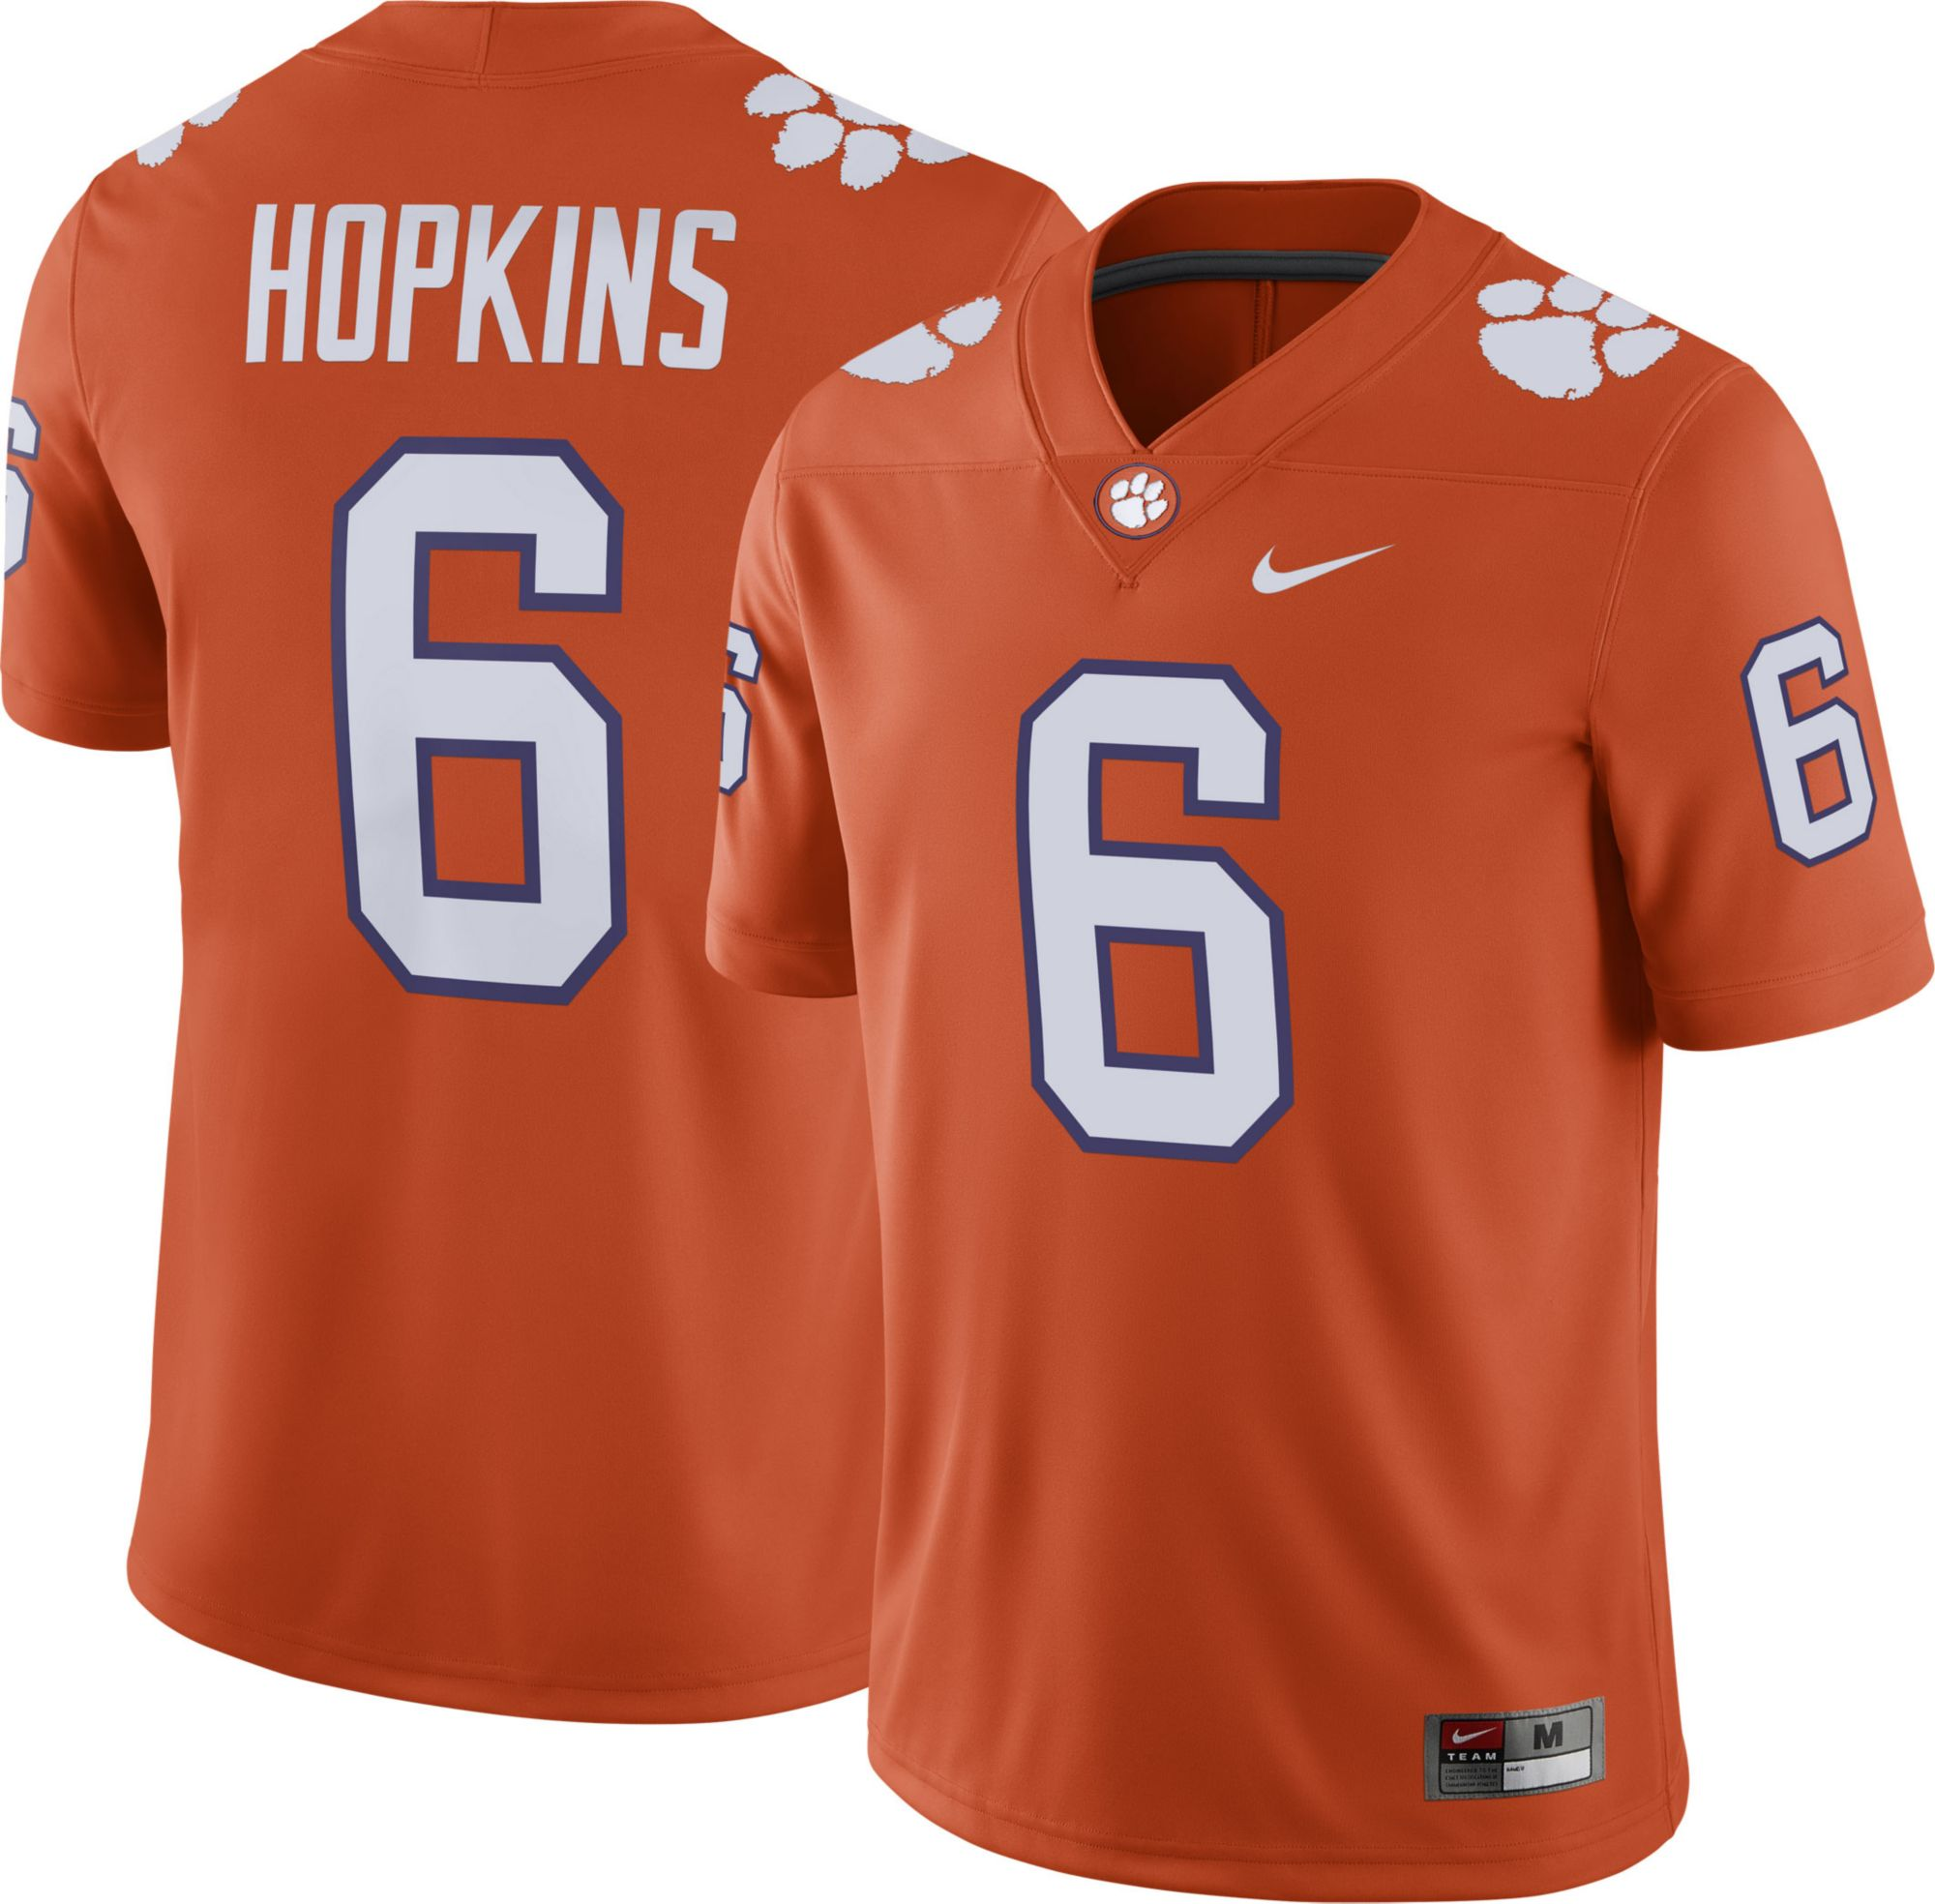 deandre hopkins jersey red